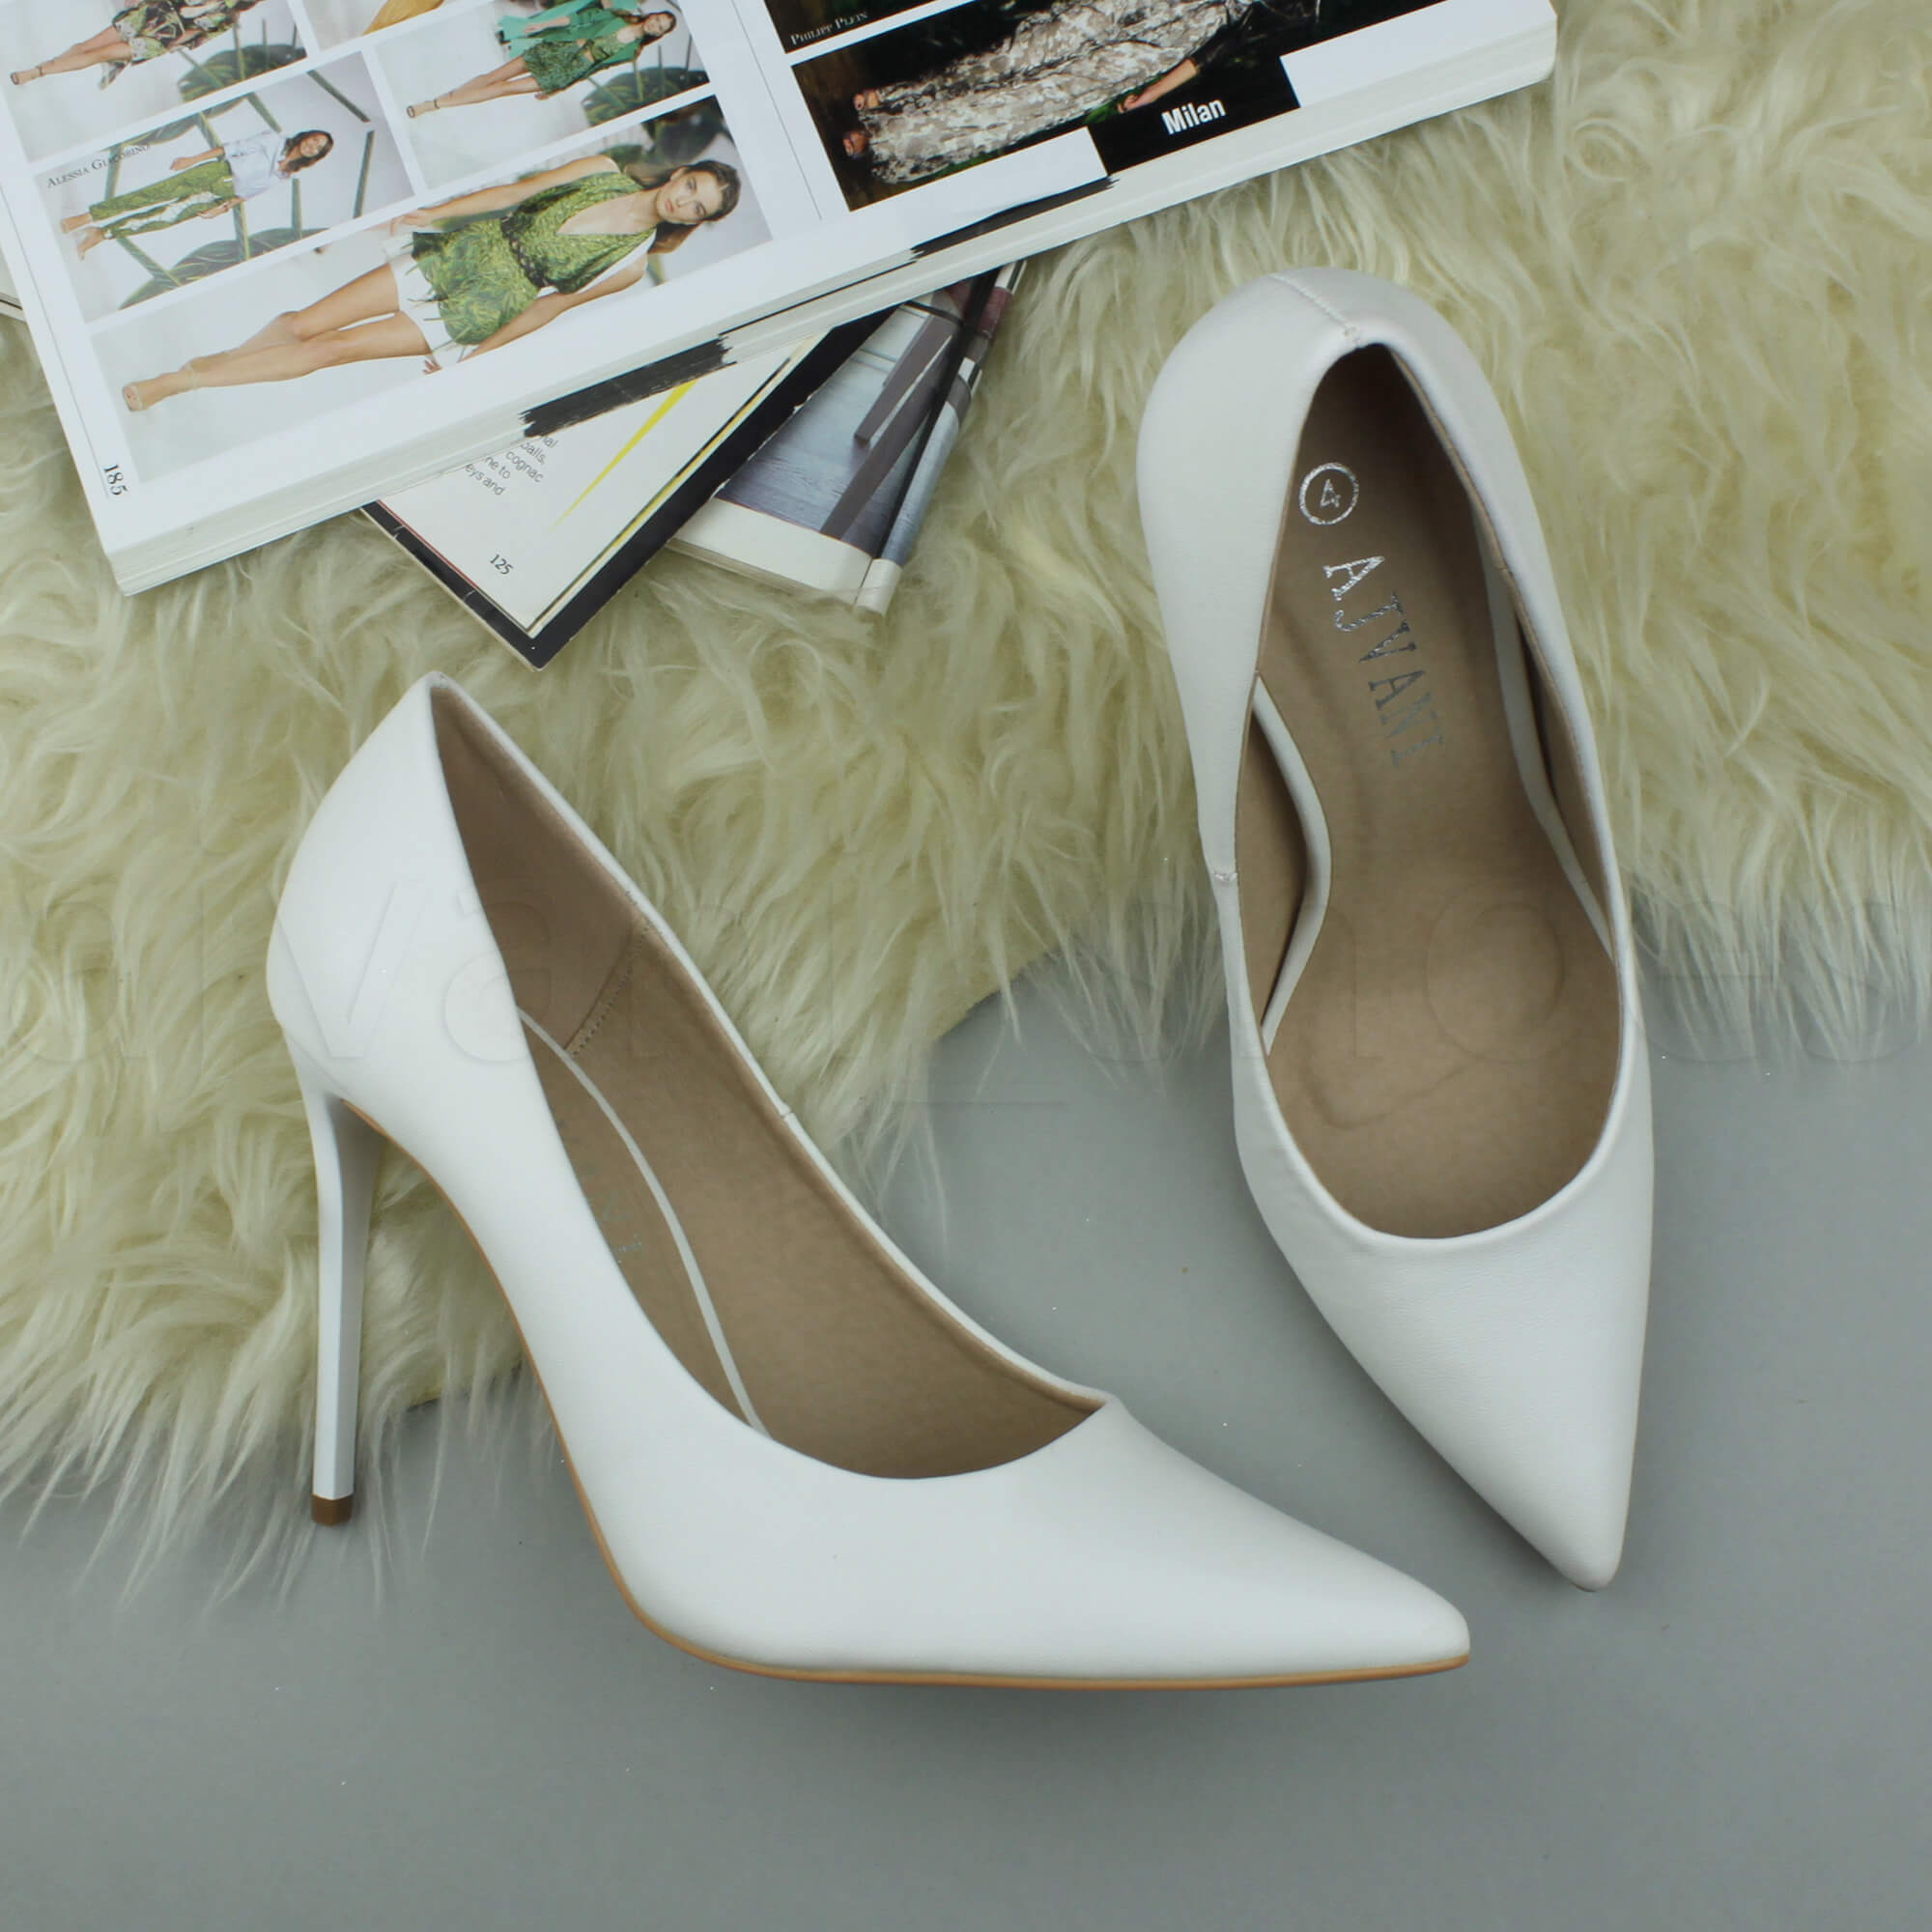 WOMENS-LADIES-HIGH-HEEL-POINTED-CONTRAST-COURT-SMART-PARTY-WORK-SHOES-PUMPS-SIZE thumbnail 242